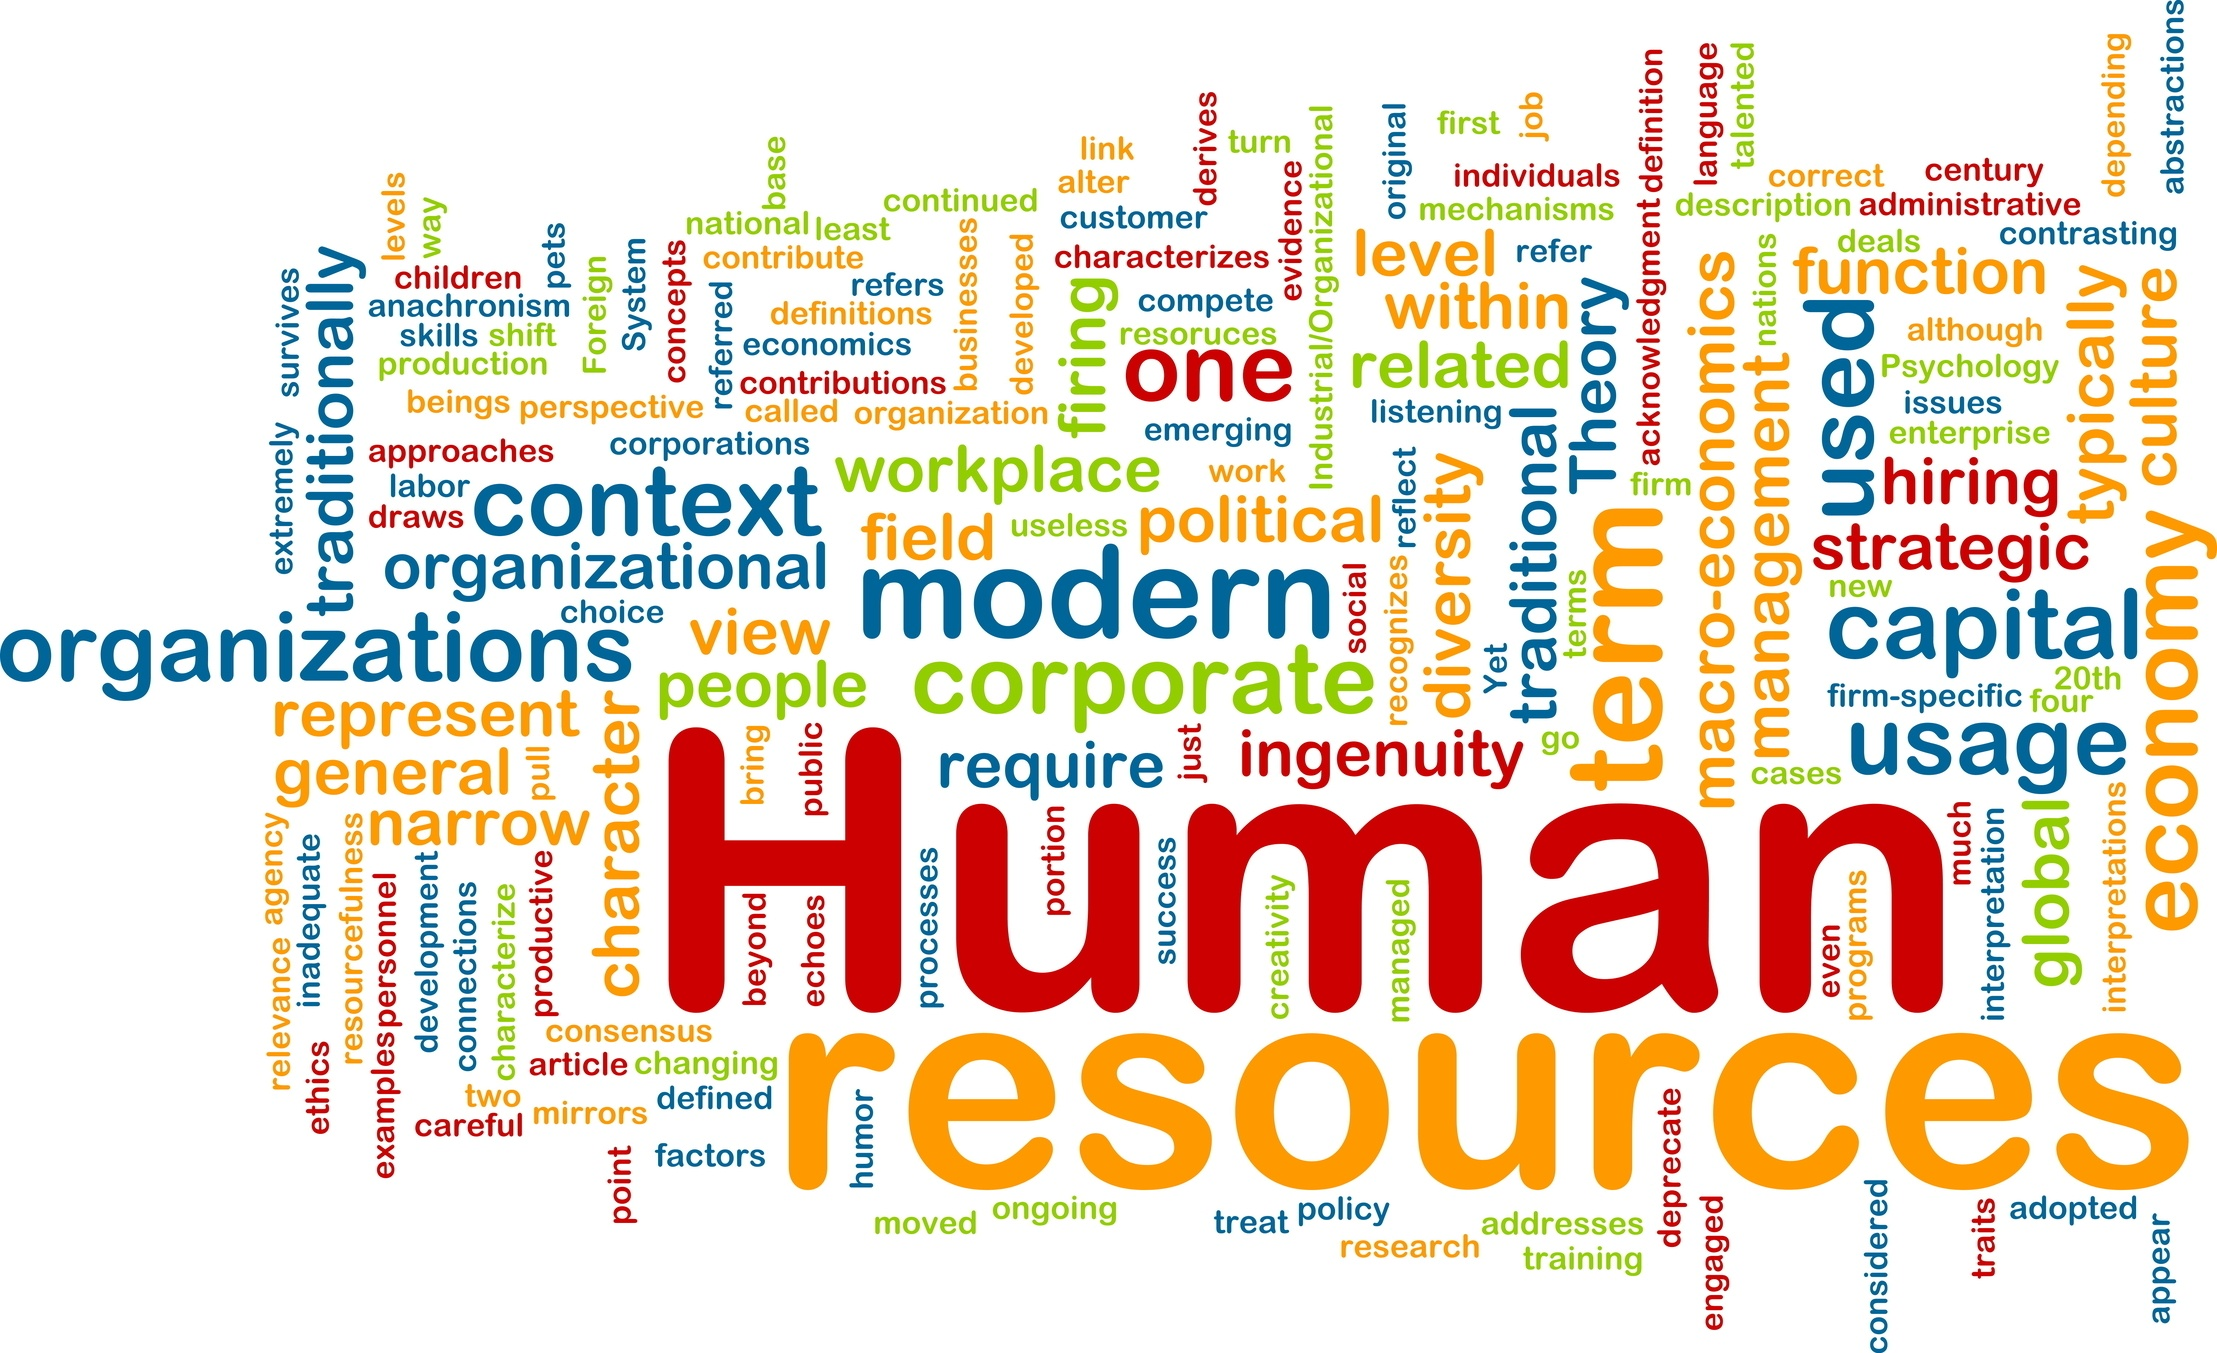 Human resources management and labour relations training